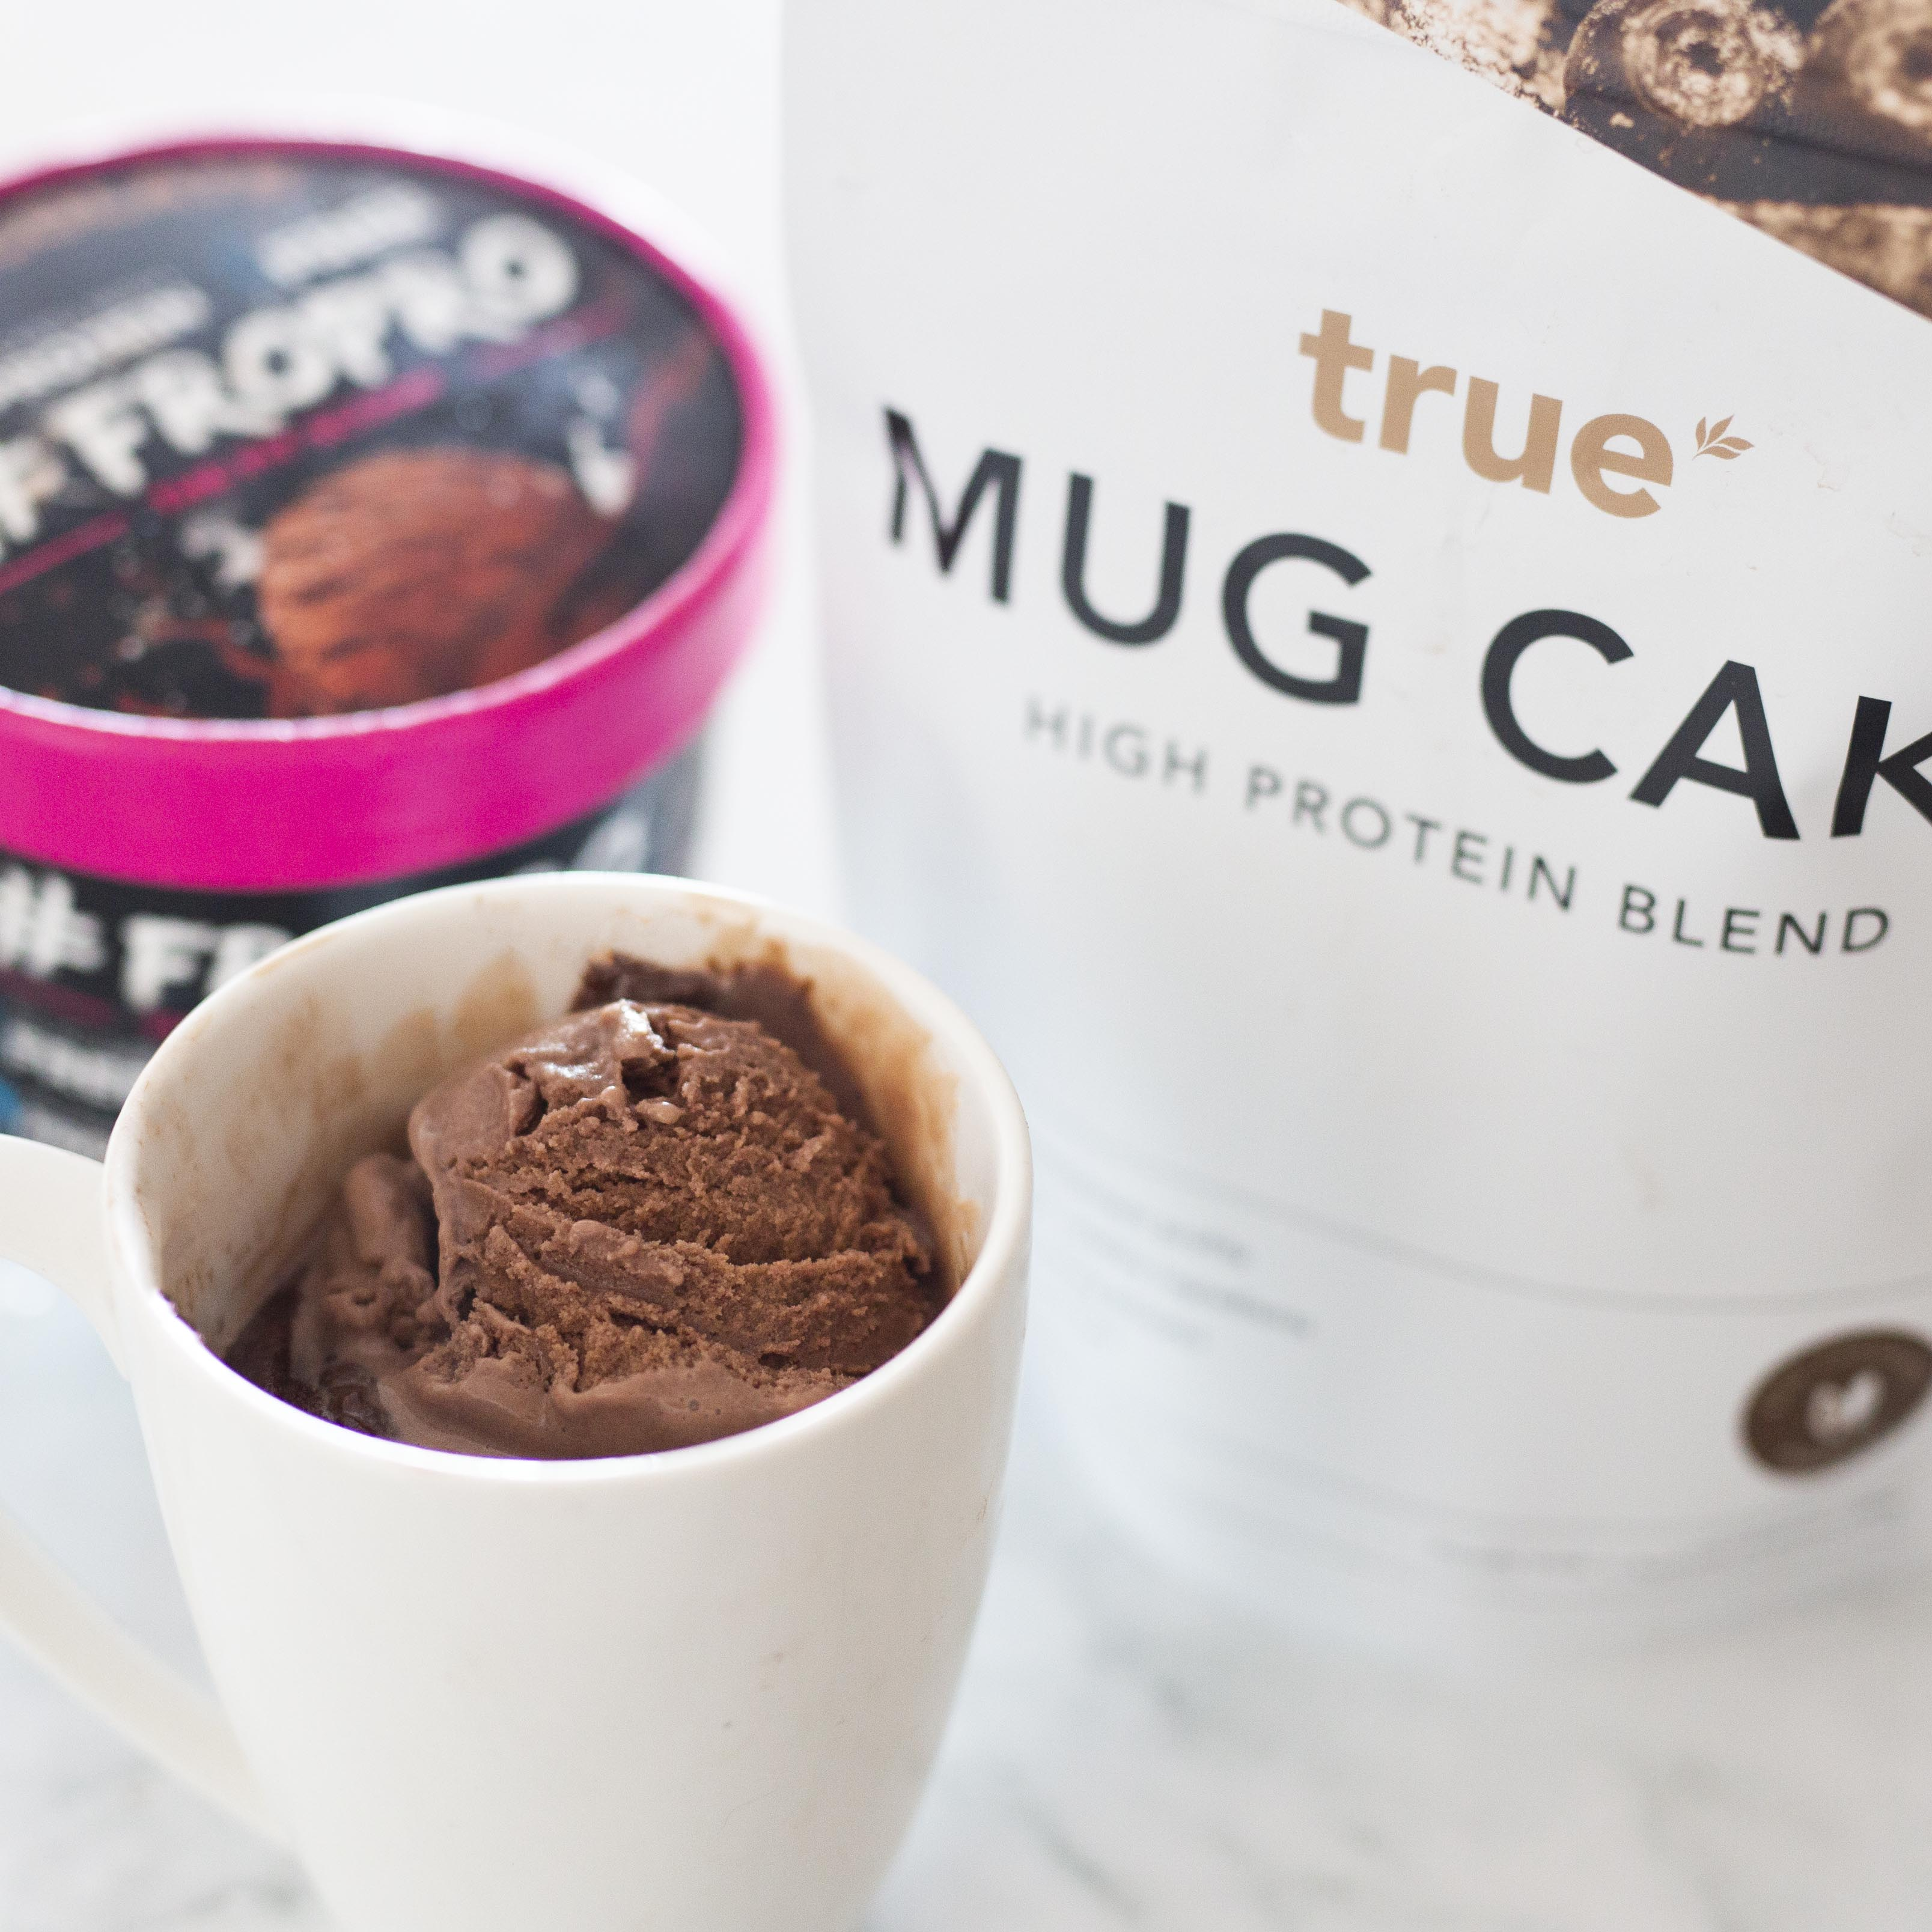 True Protein Mug Cake with Chocolate FroPro!